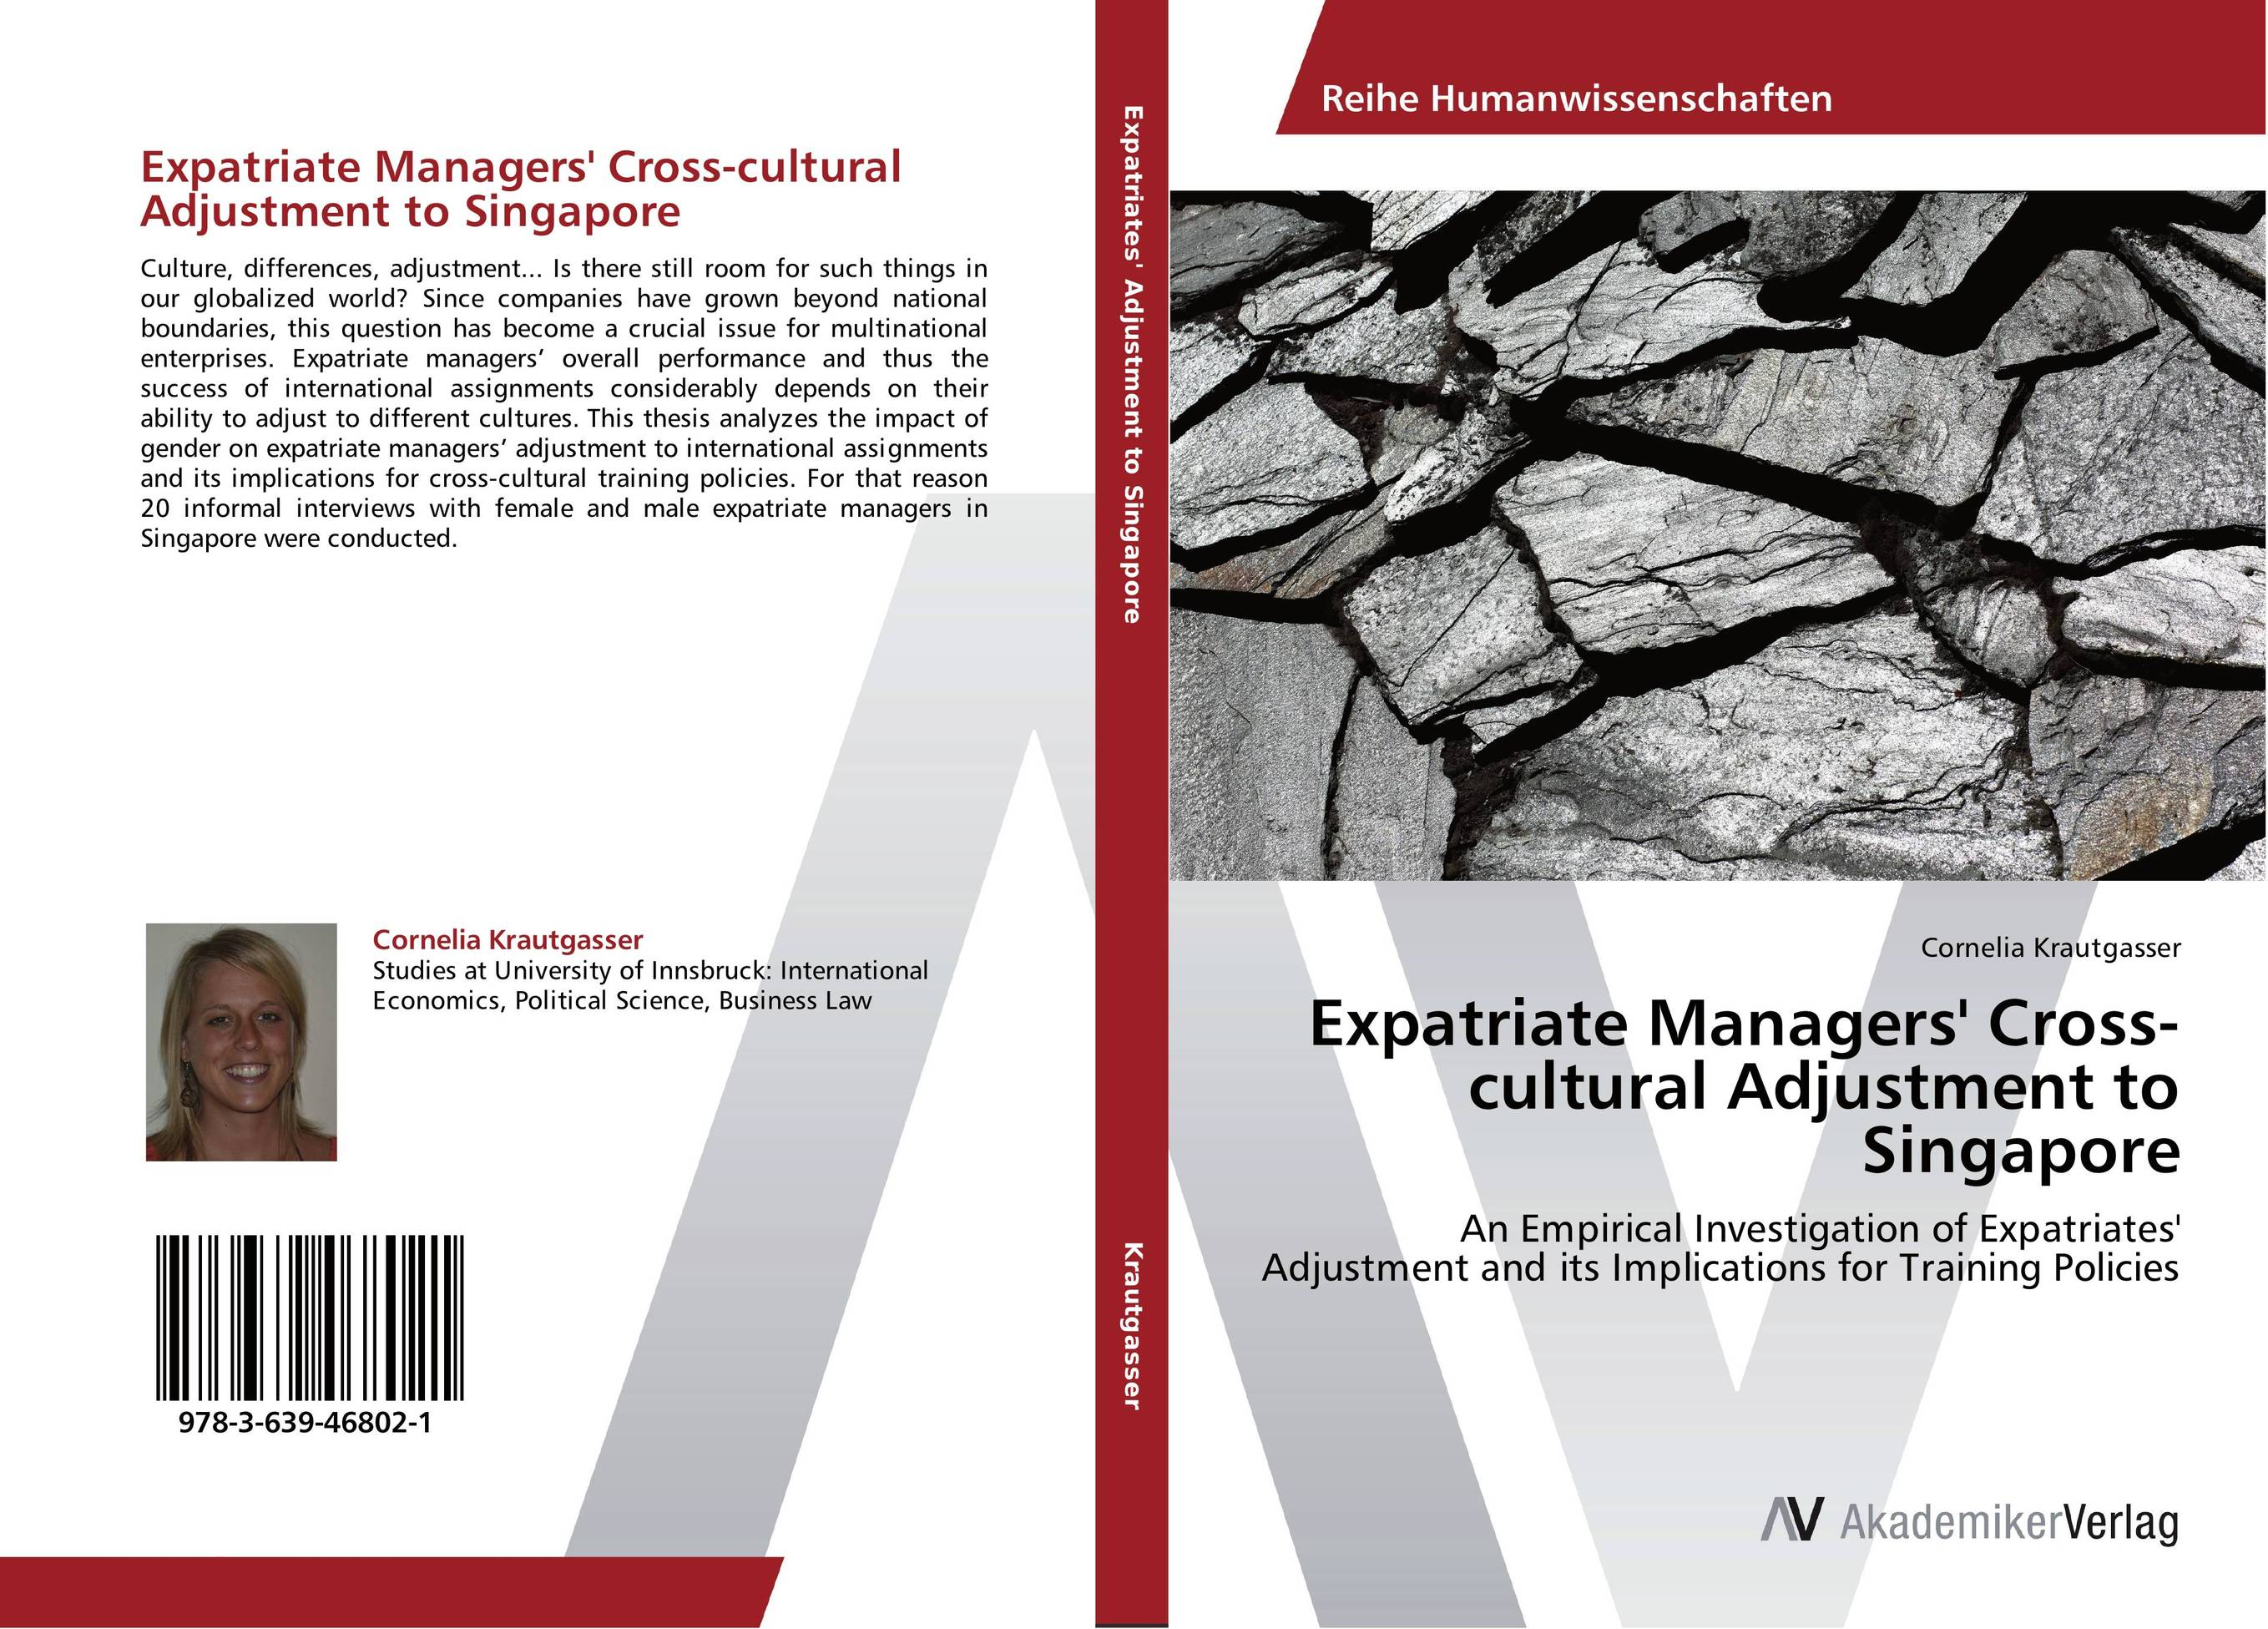 Expatriate Managers' Cross-cultural Adjustment to Singapore